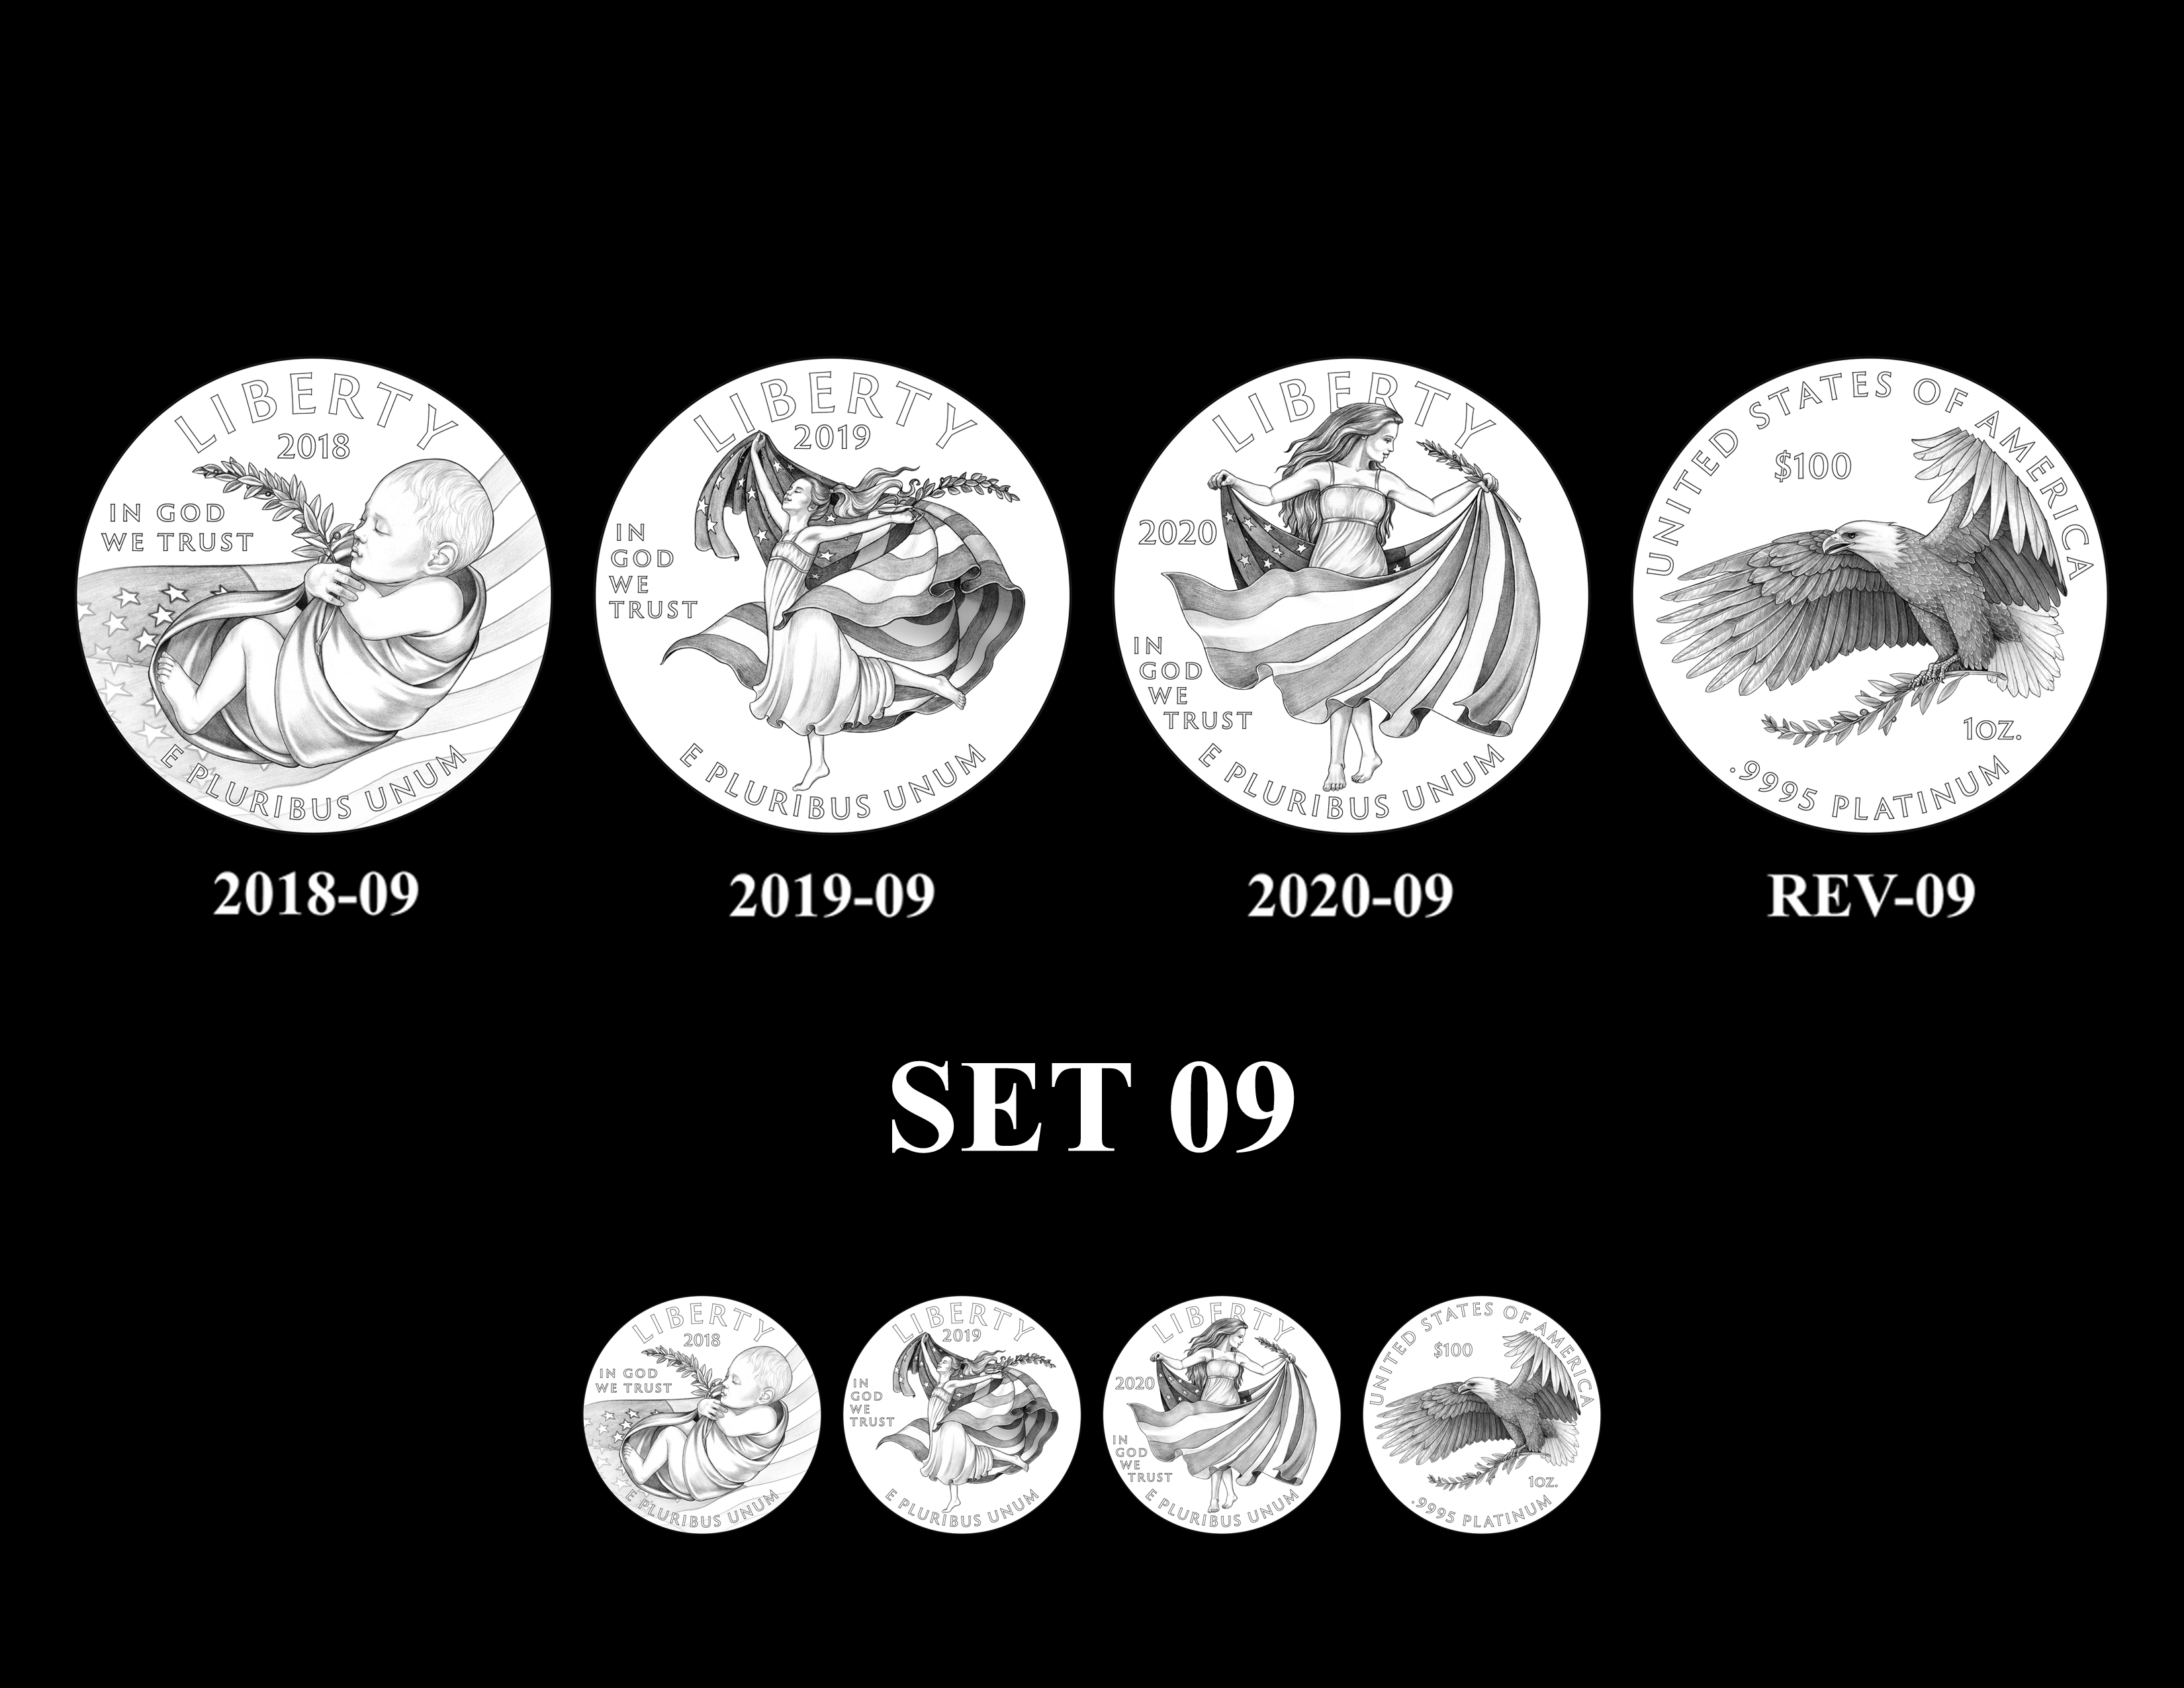 SET 09 - 2018 2019 and 2020 American Eagle Platinum Proof Program